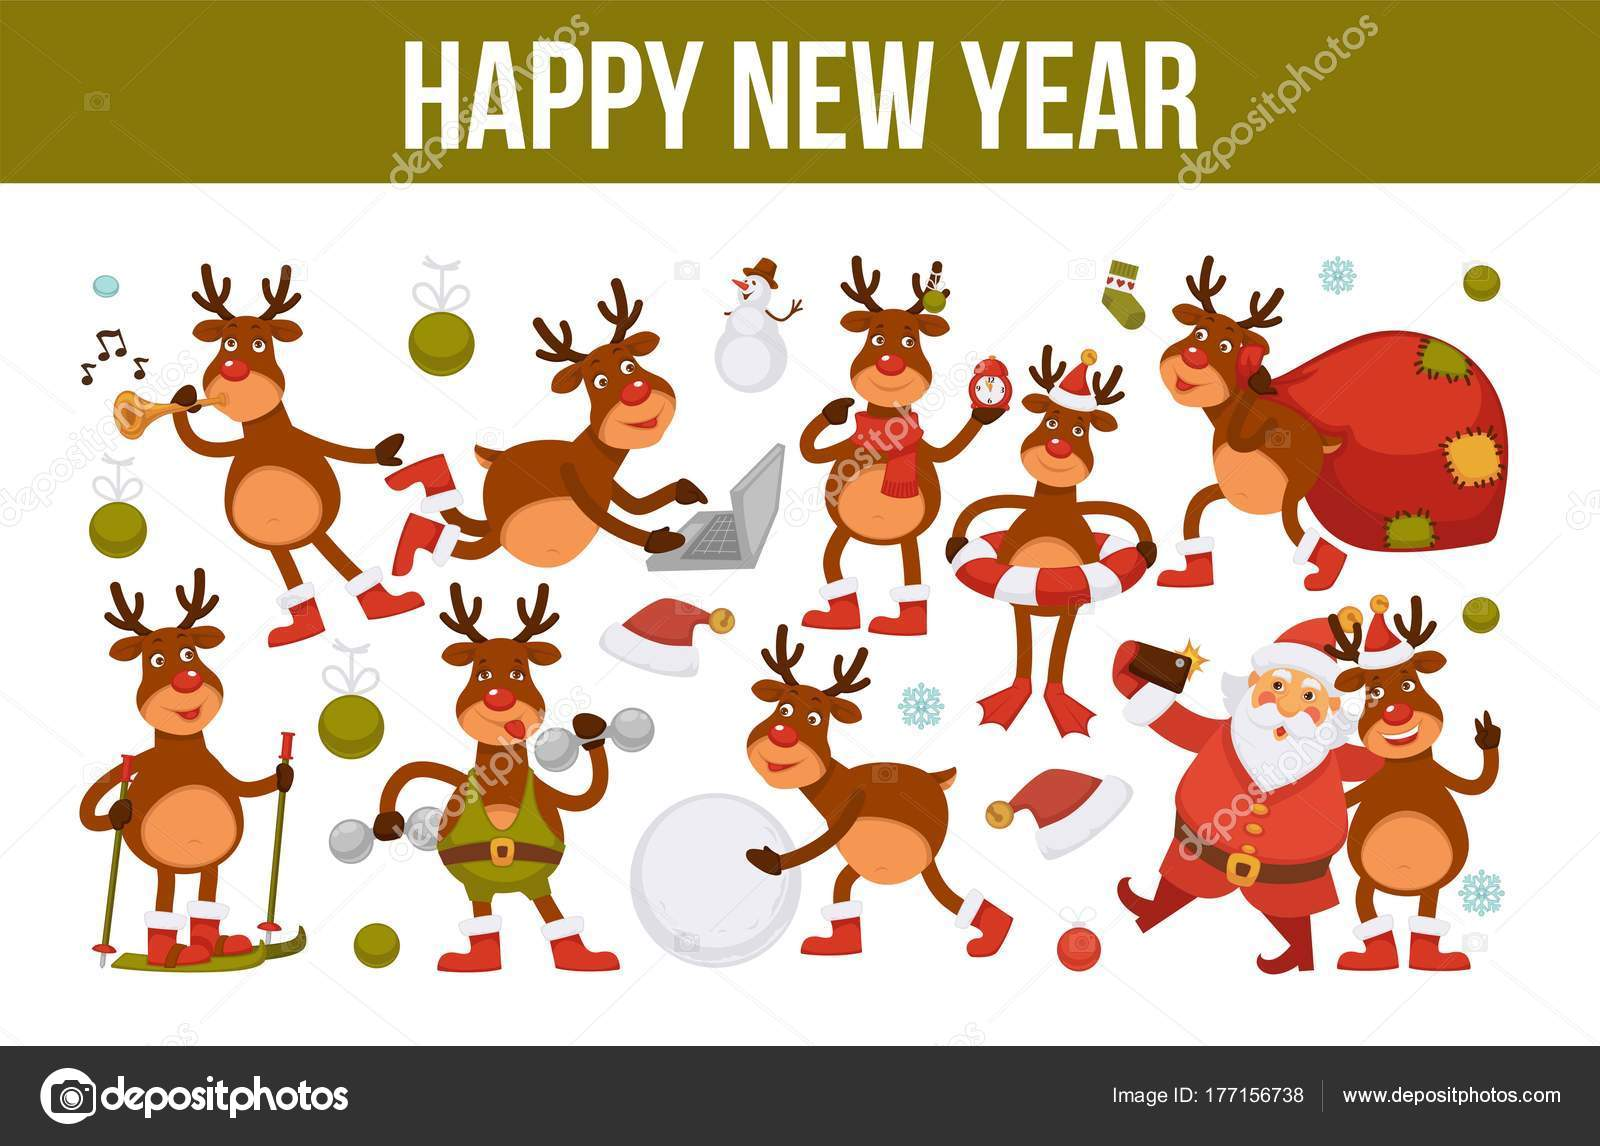 merry christmas and happy new year 2018 poster of deer or reindeer cartoon funny character celebrating holidaysgreeting card of dog in santa hat with xmas